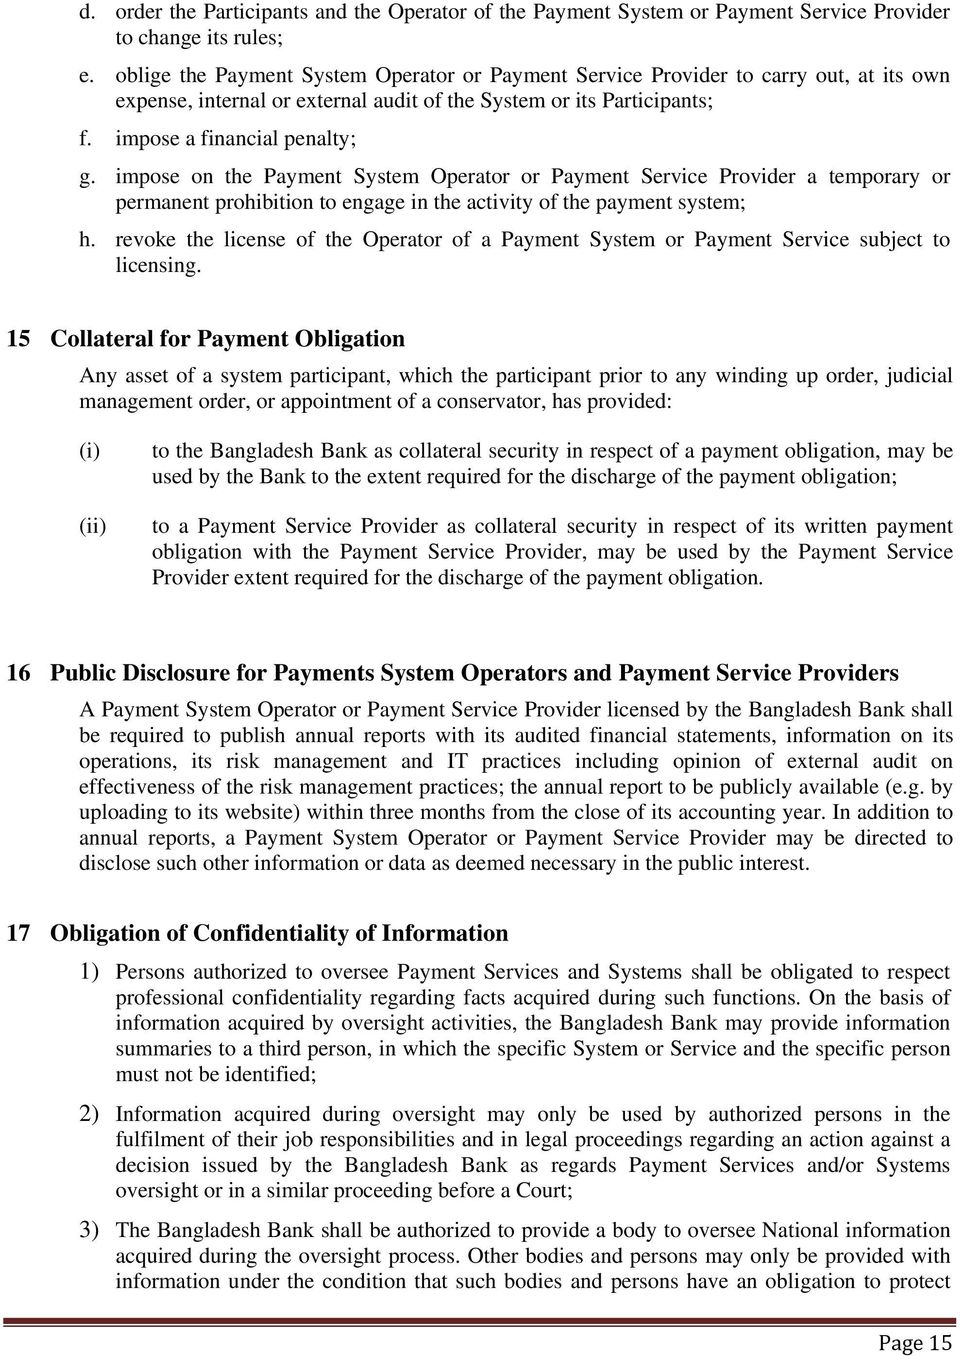 impose on the Payment System Operator or Payment Service Provider a temporary or permanent prohibition to engage in the activity of the payment system; h.